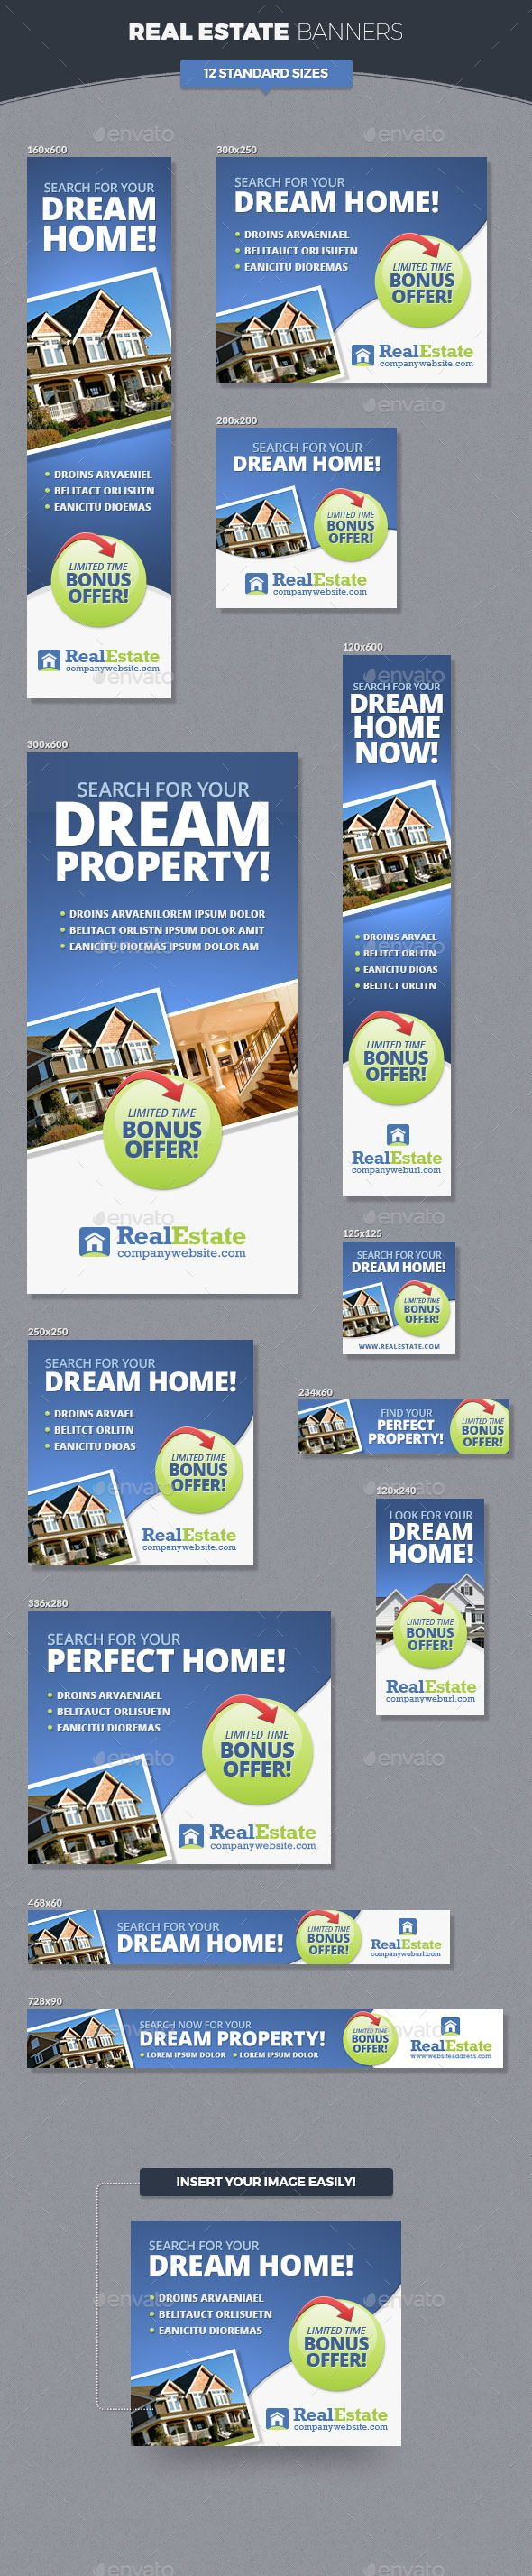 Real Estate Banner Ads | Banners, Web banners and Banner template